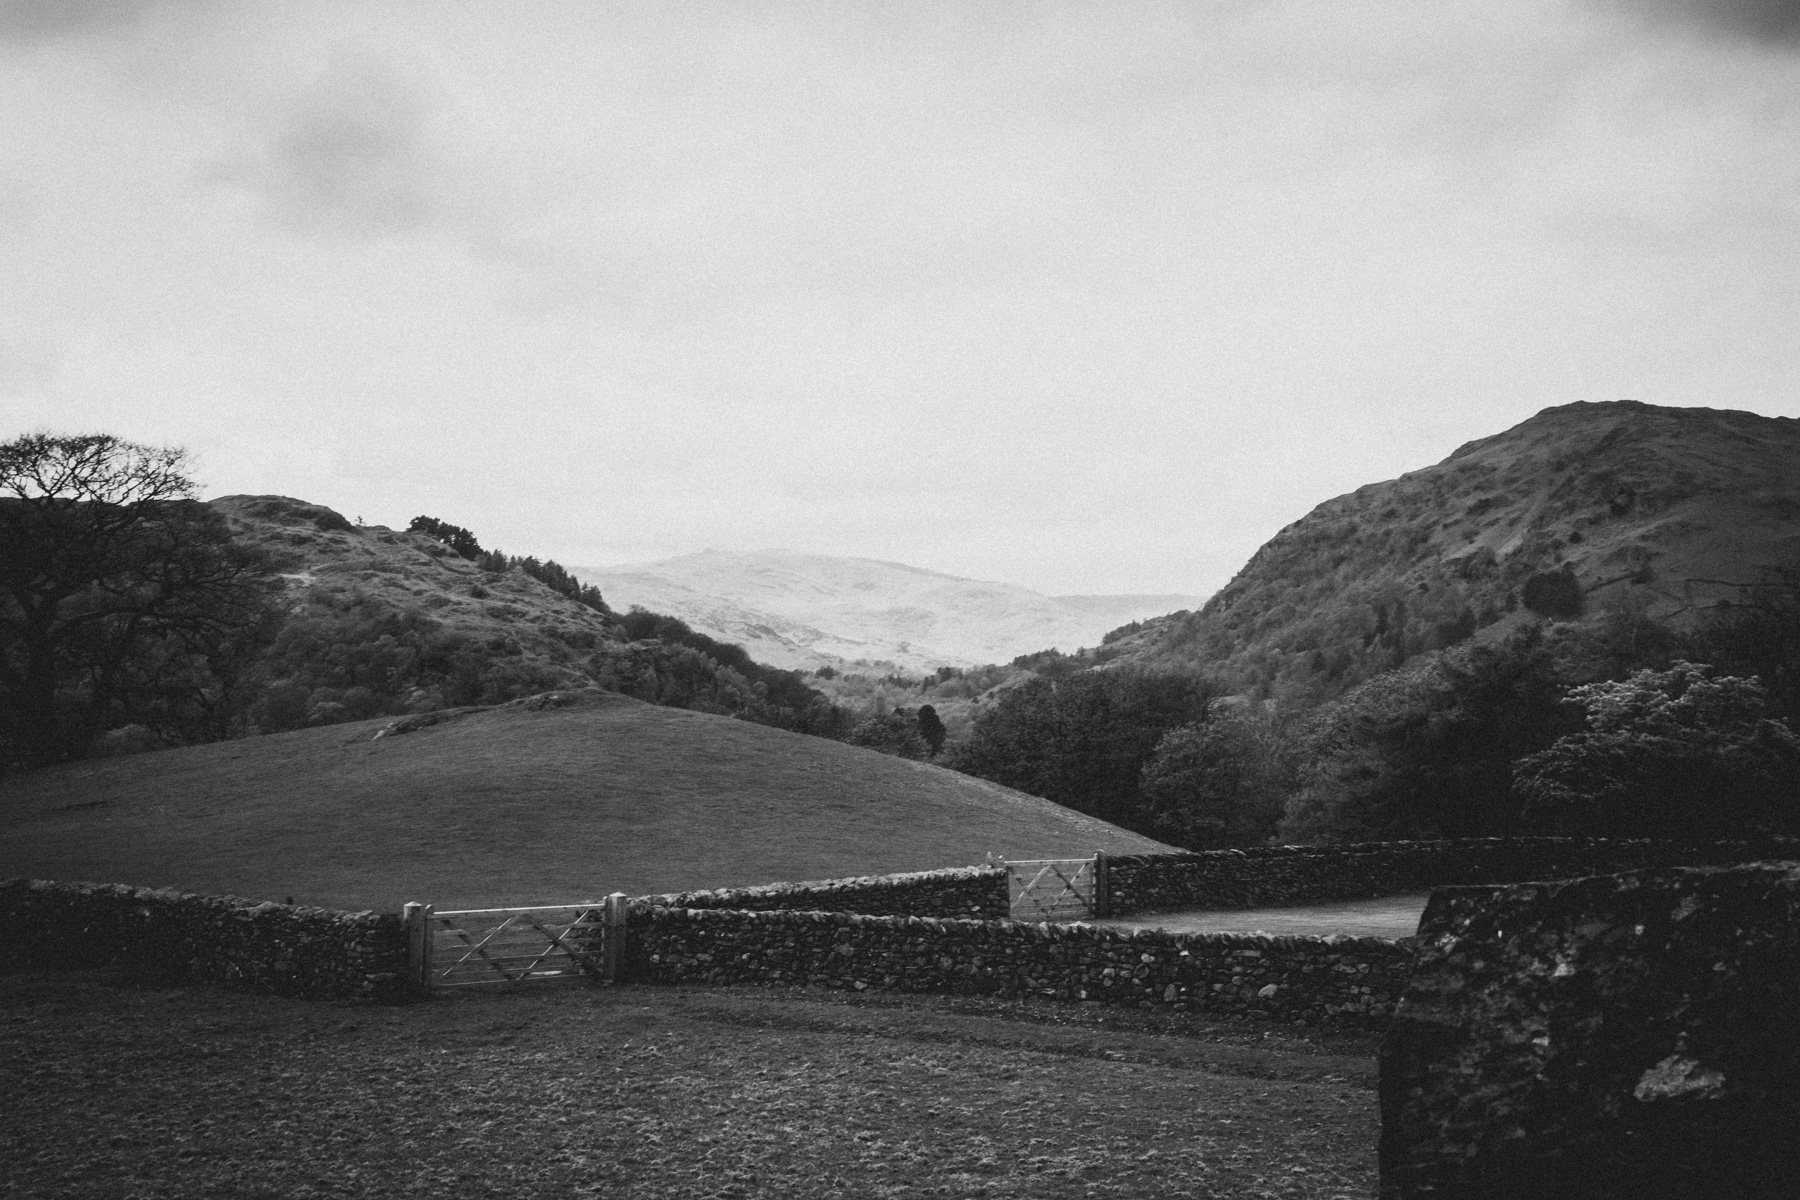 Lake_District_01052017-23.JPG